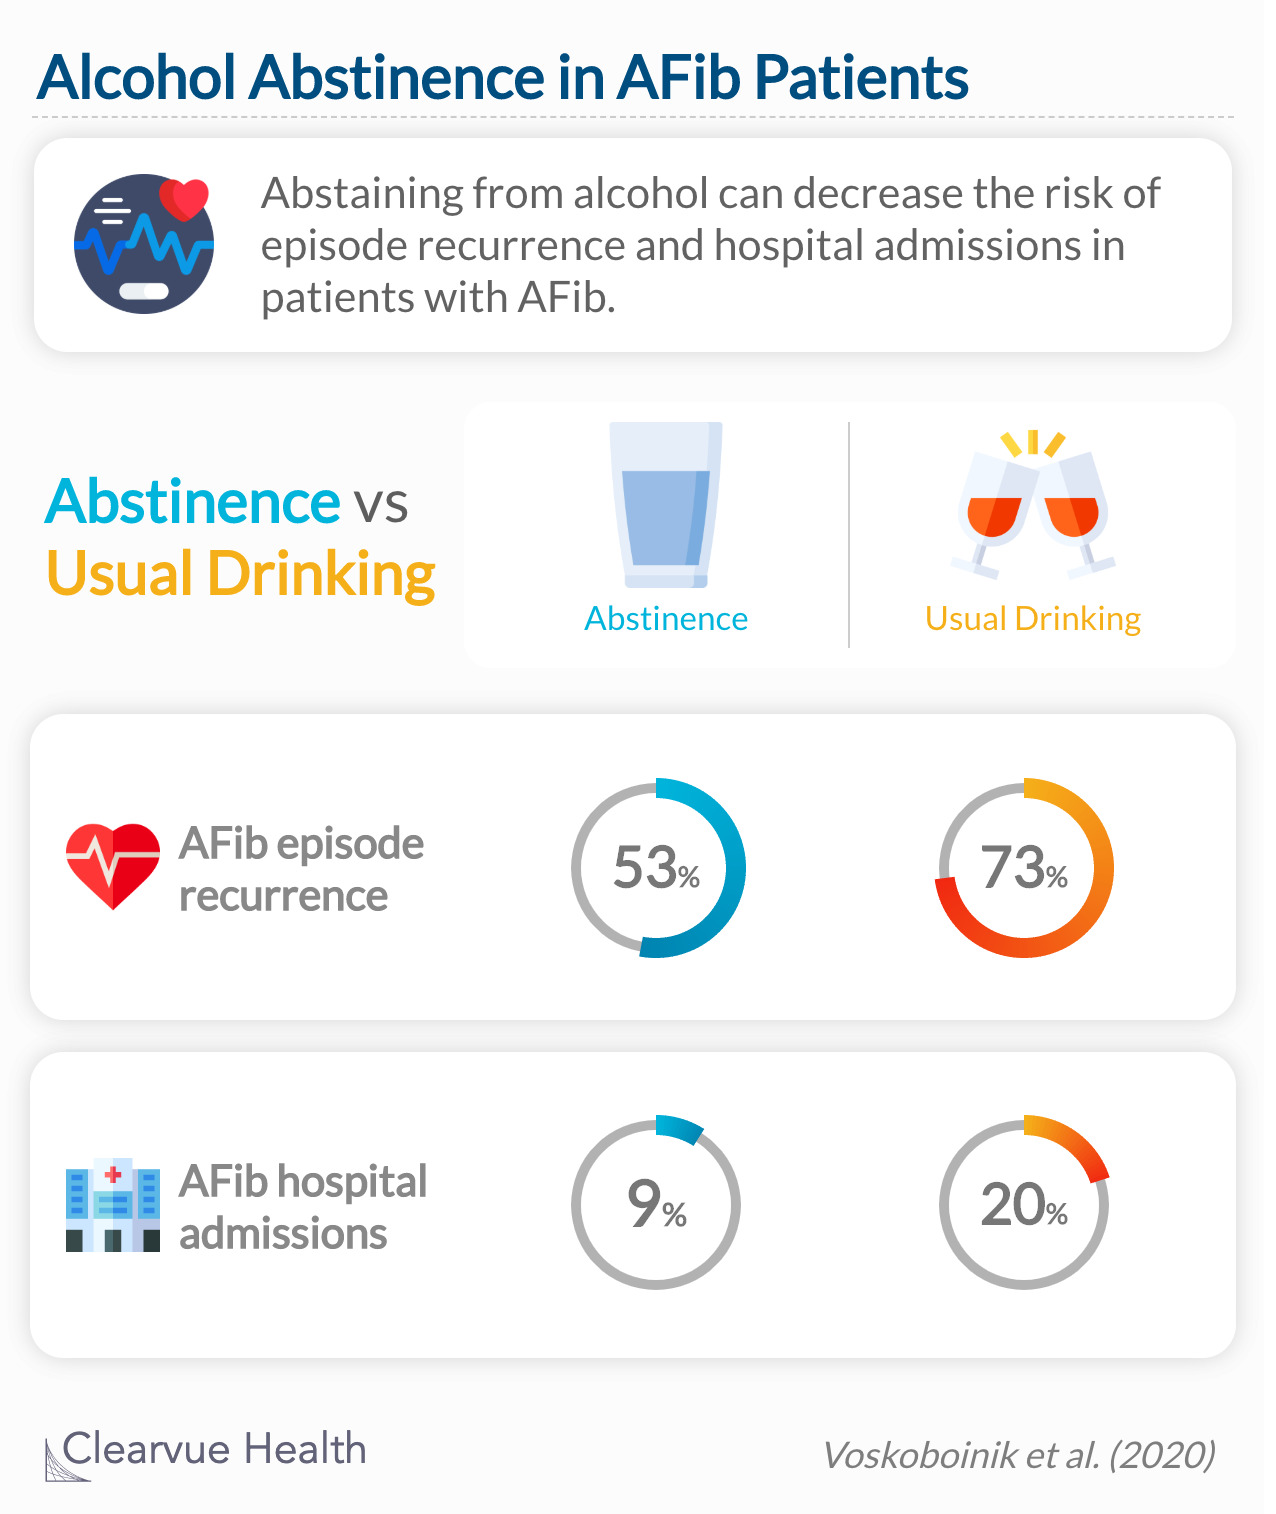 Abstinence from alcohol reduced arrhythmia recurrences in regular drinkers with atrial fibrillation.